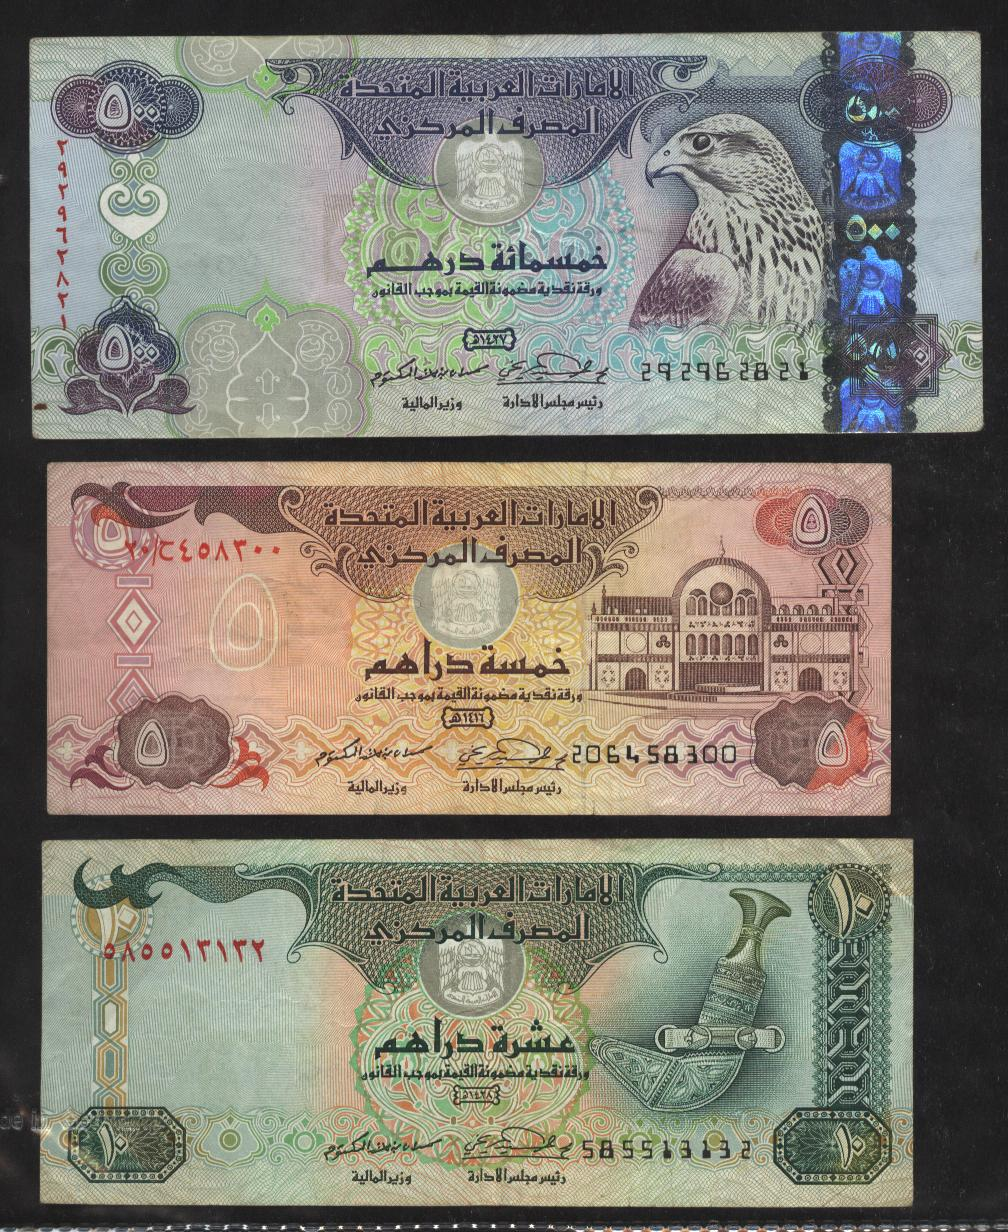 UAE Dirhams | WORLD COINS AND CURRENCY COLLECTING